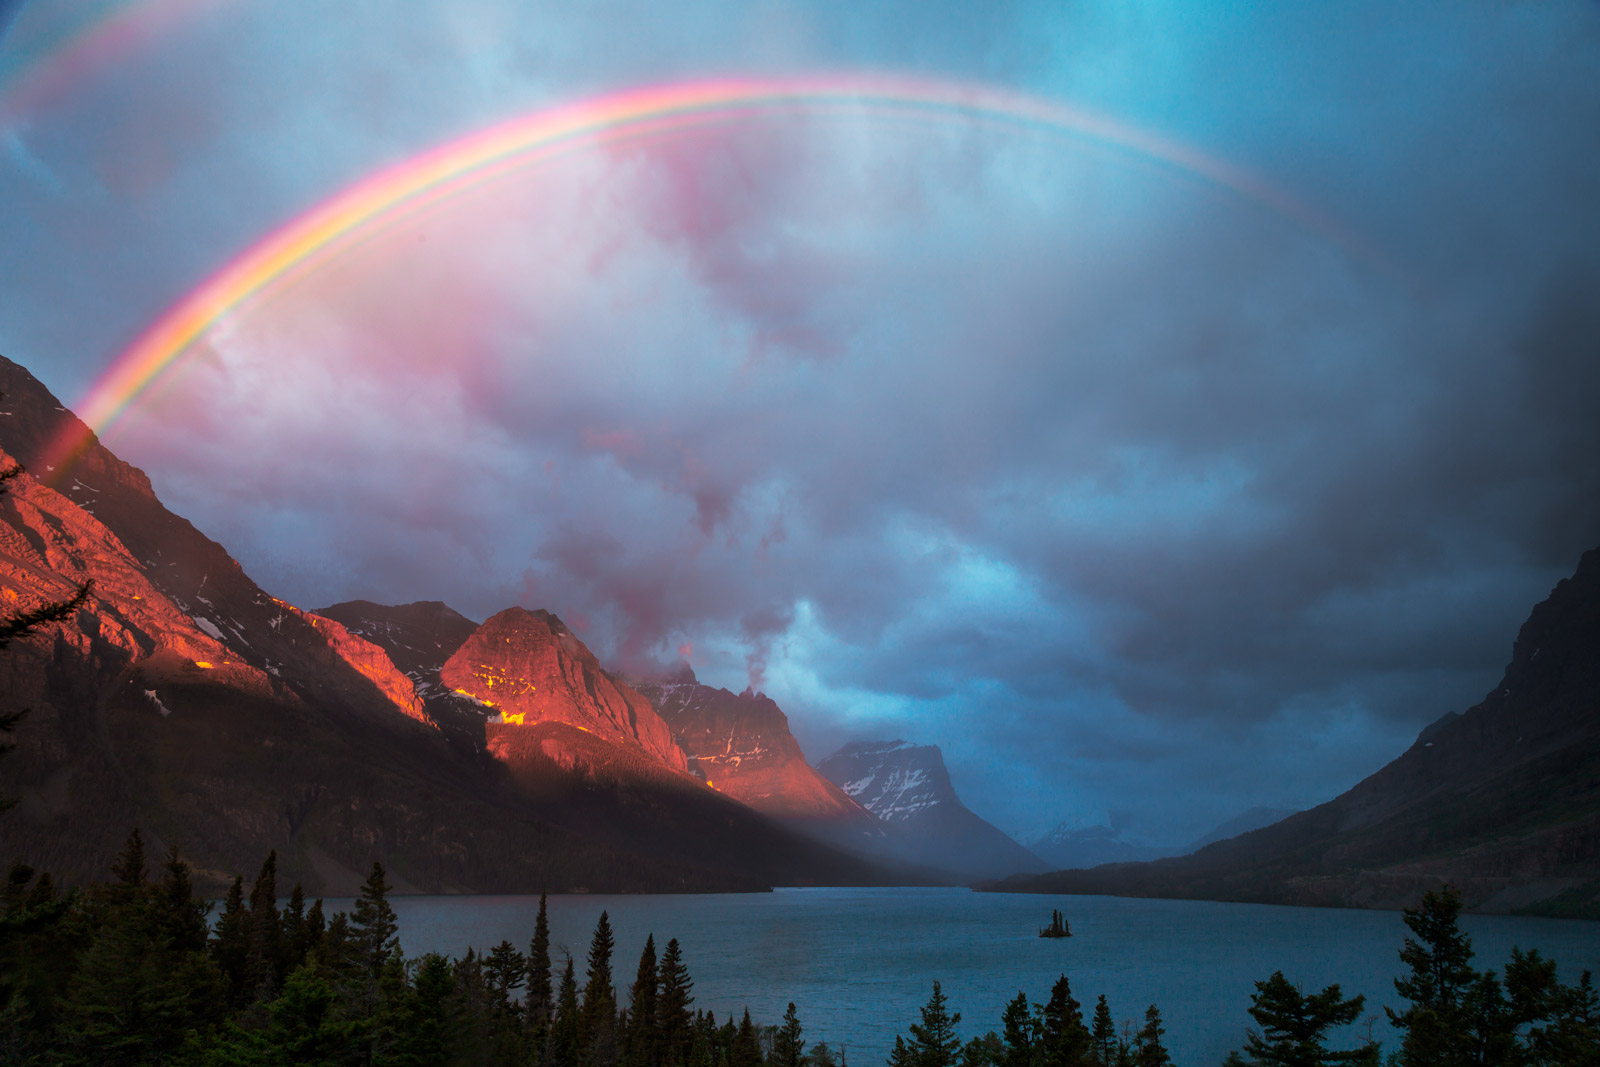 A Limited Edition, Fine Art photograph of Wild Goose Island with the many colors of the rainbow over it in Glacier National Park...